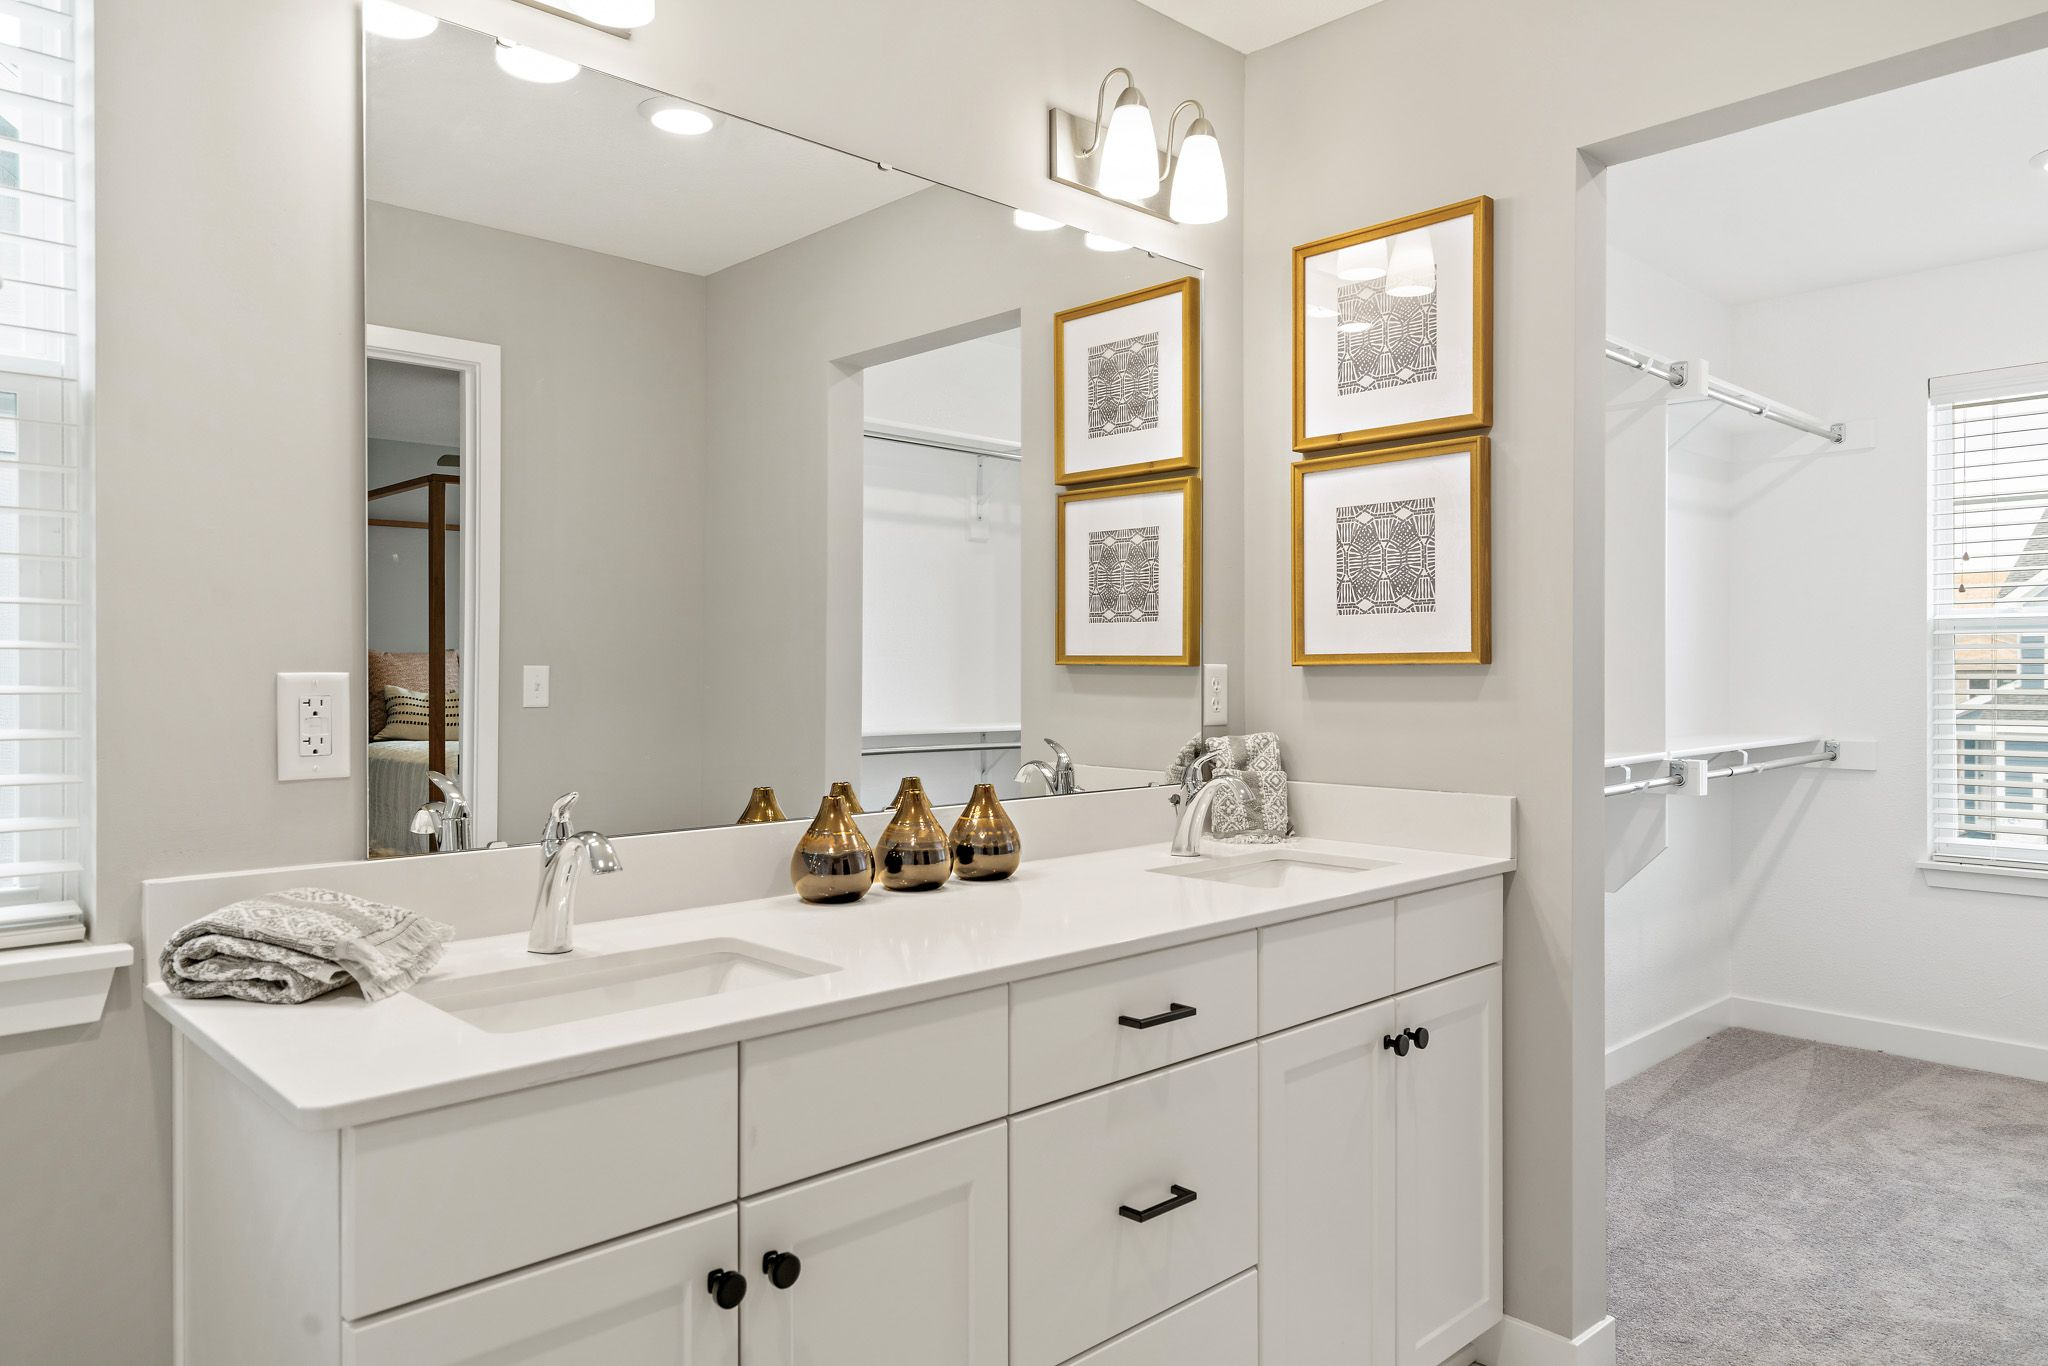 Bathroom featured in the honeydew - contemporary By clover & hive in Kansas City, MO